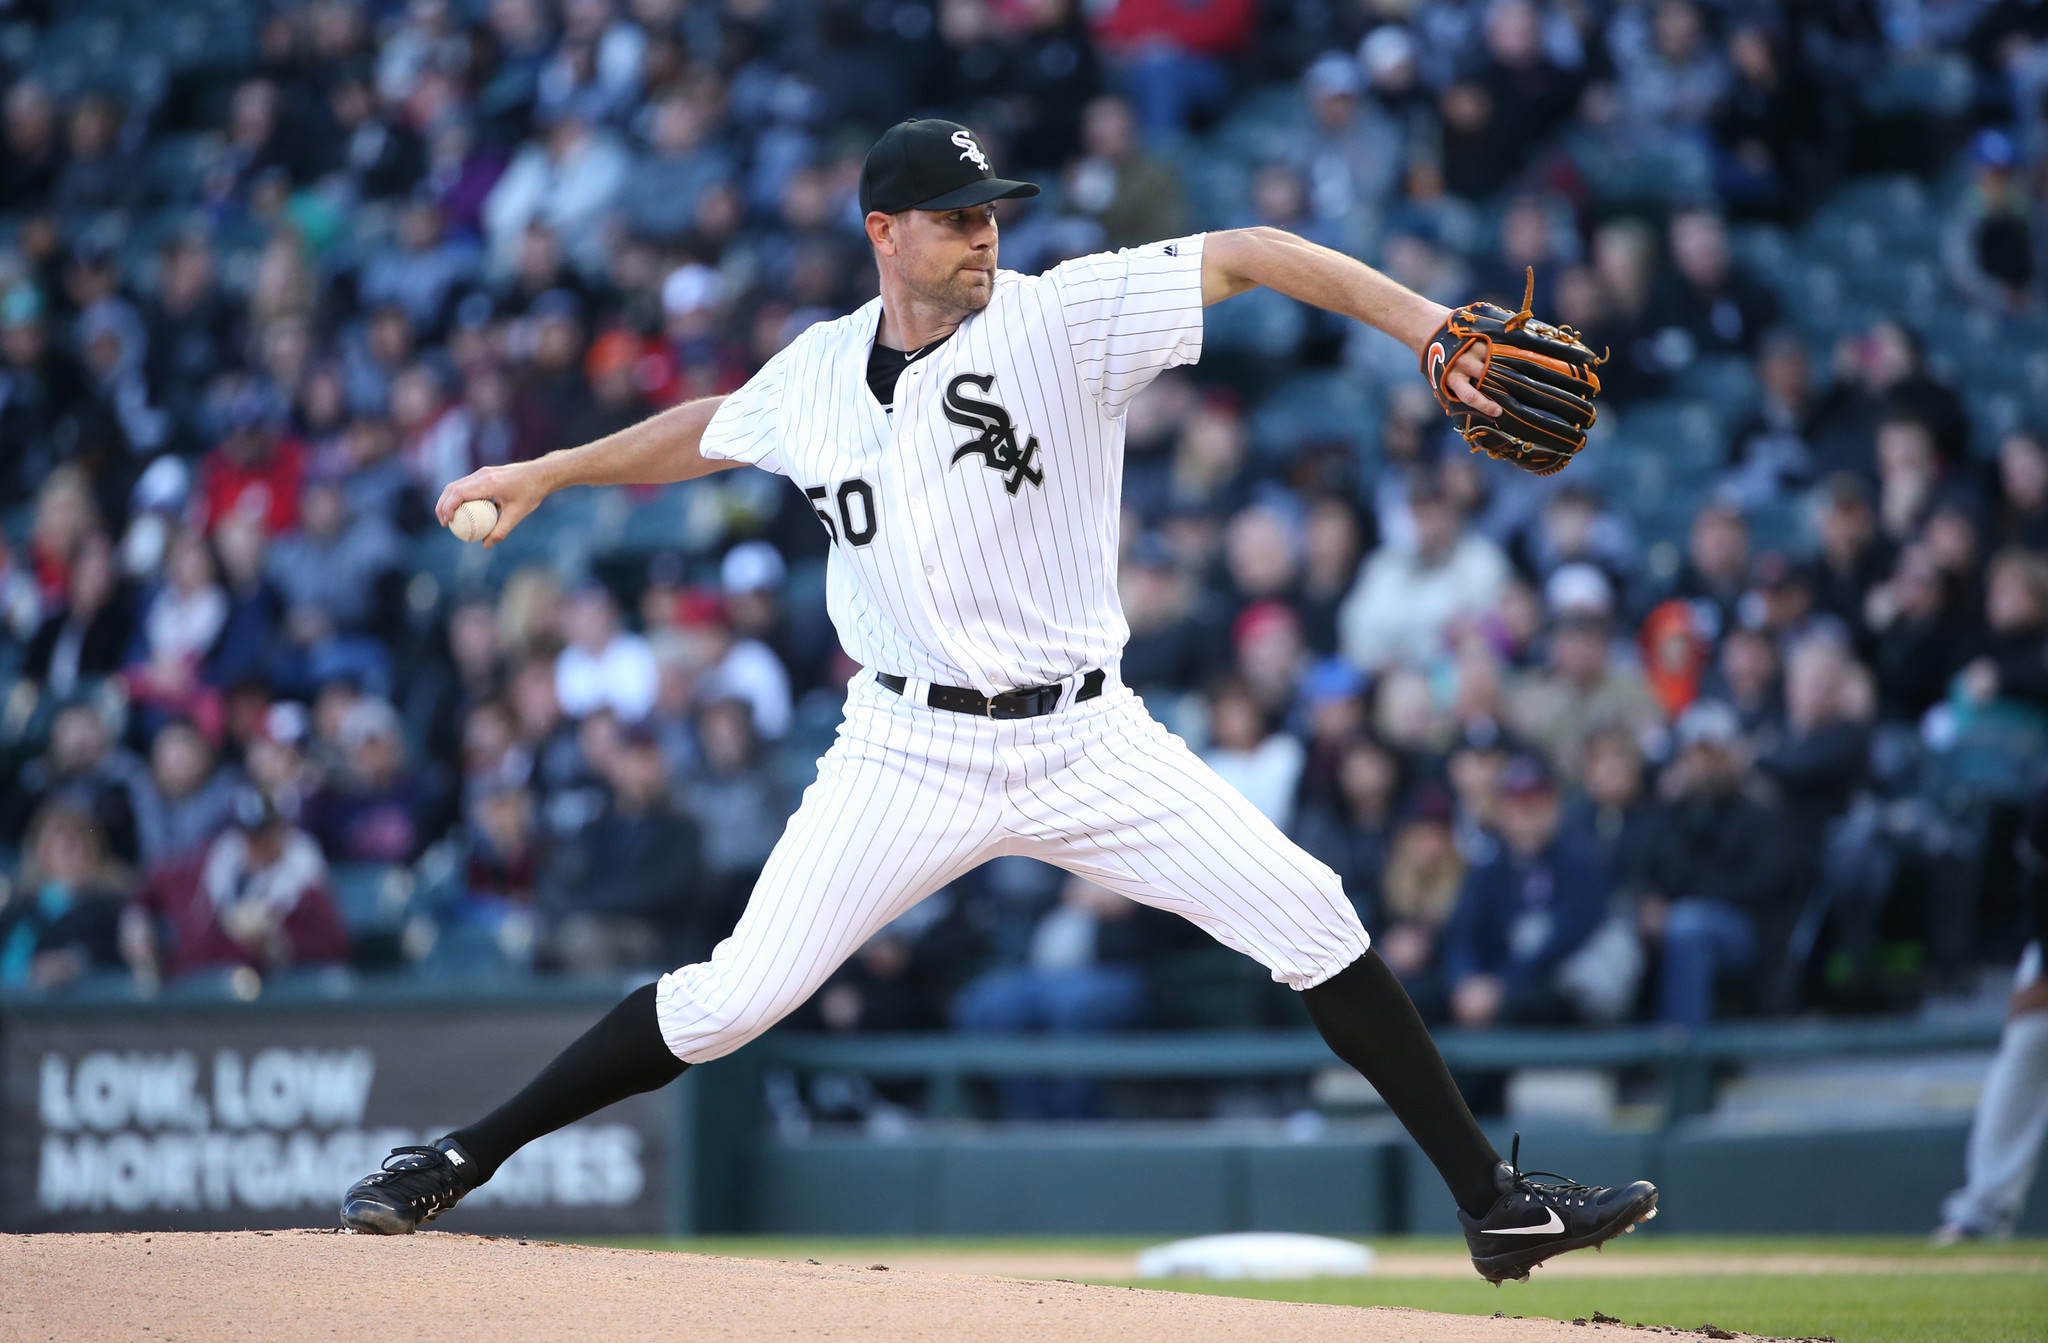 Ct-series-white-sox-tigers-spt-0428-20170427